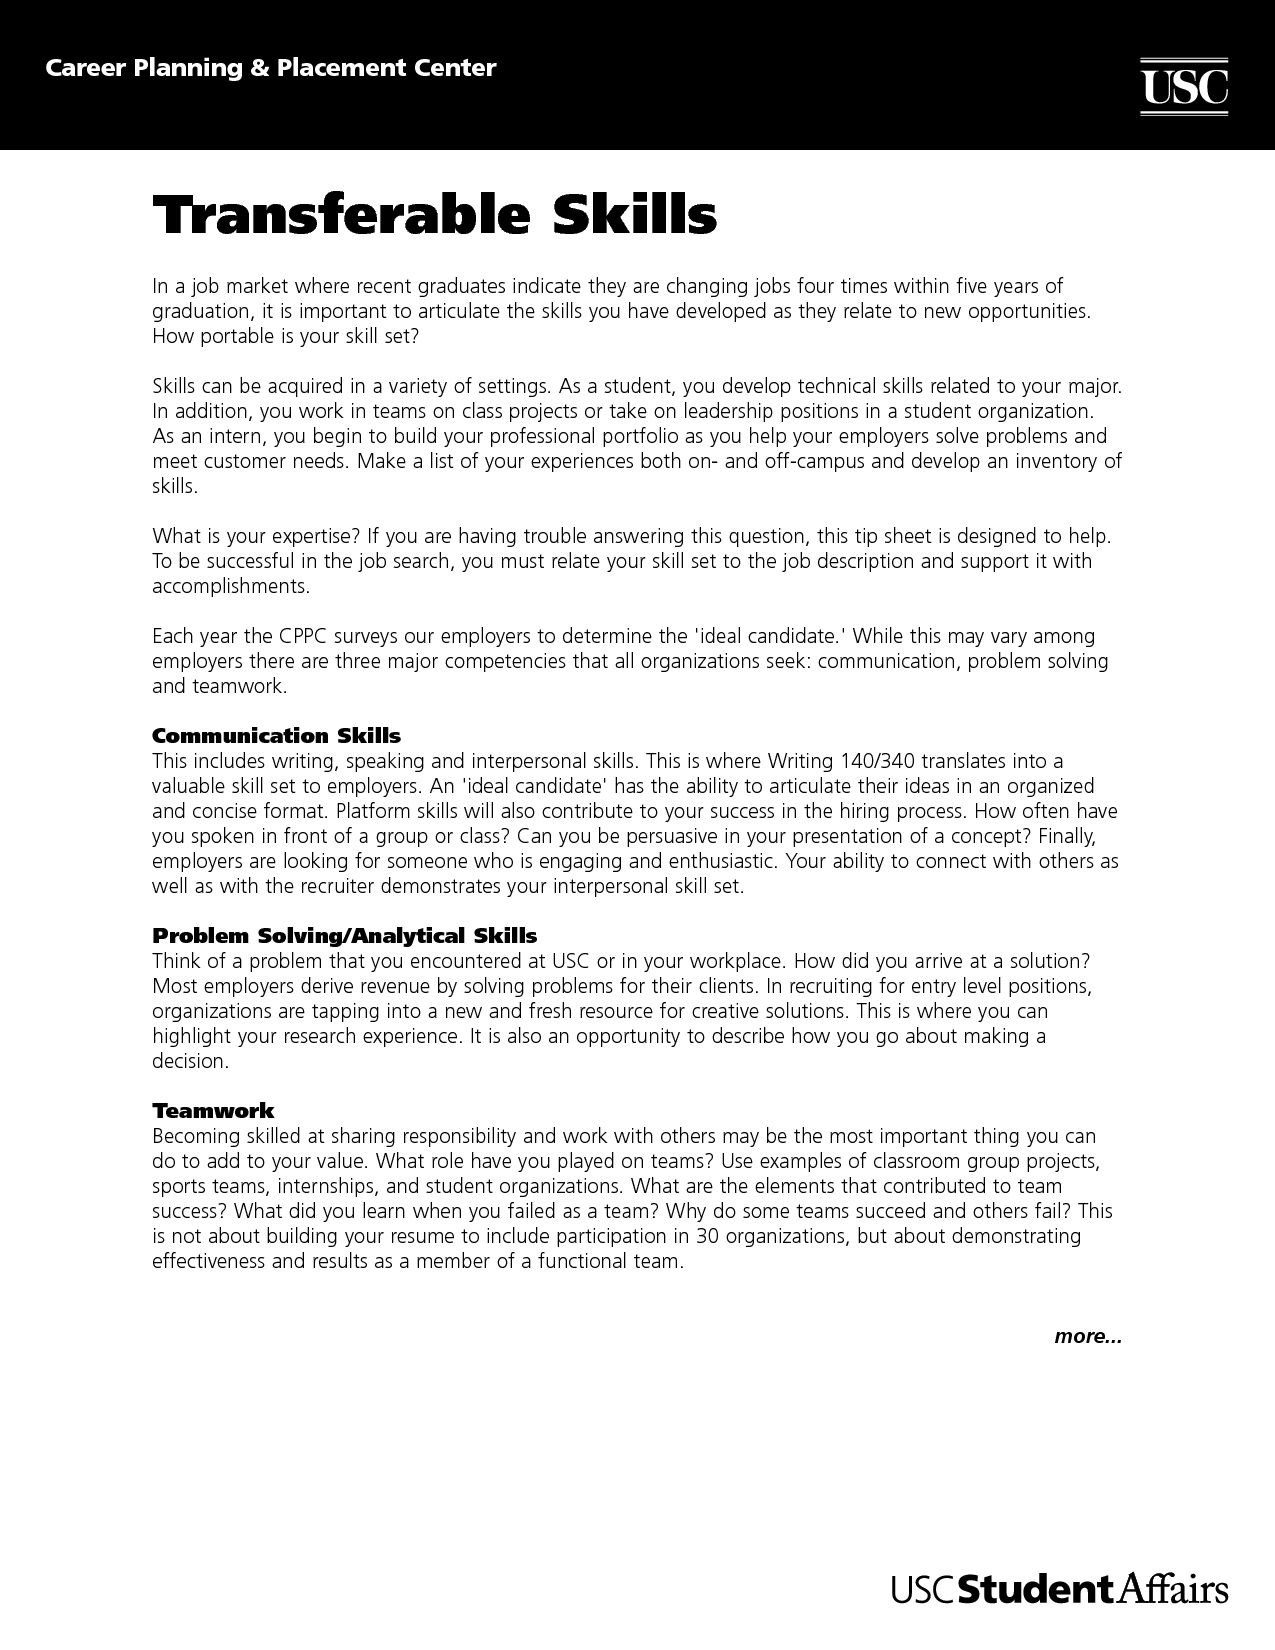 Resume Sample Transferable Skills